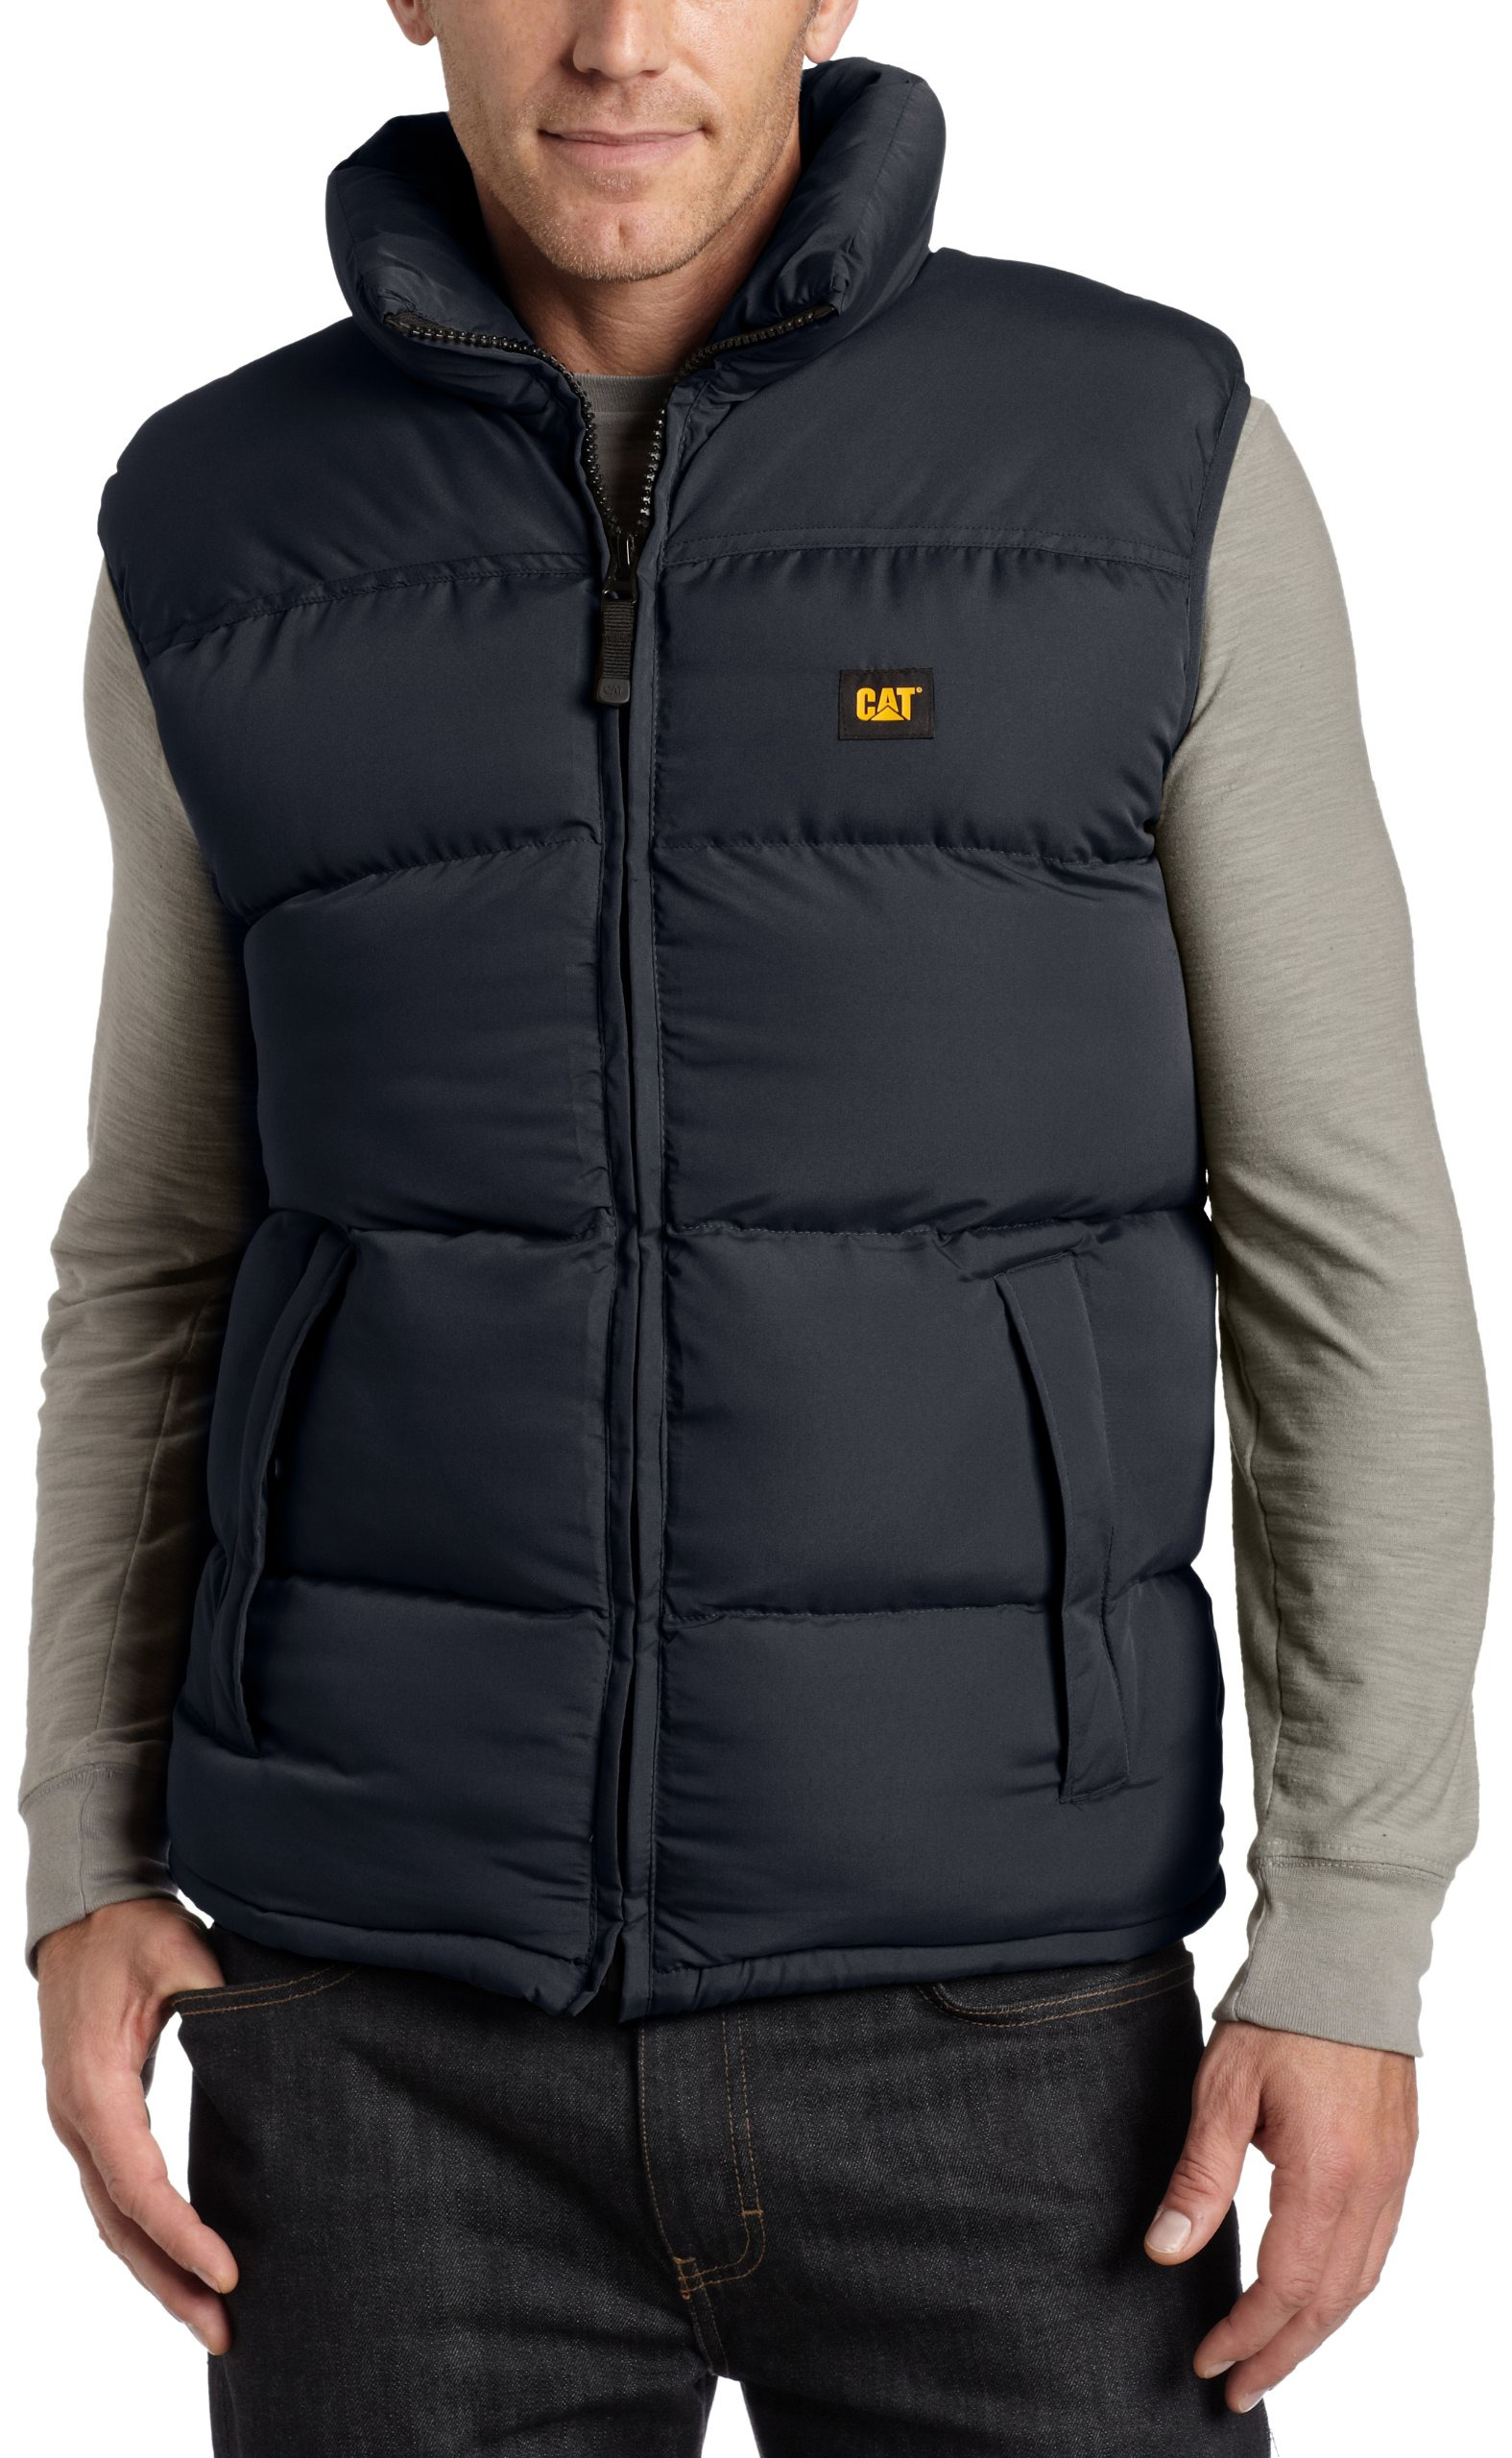 Caterpillar Men's Arctic Zone Vest, Navy, Medium